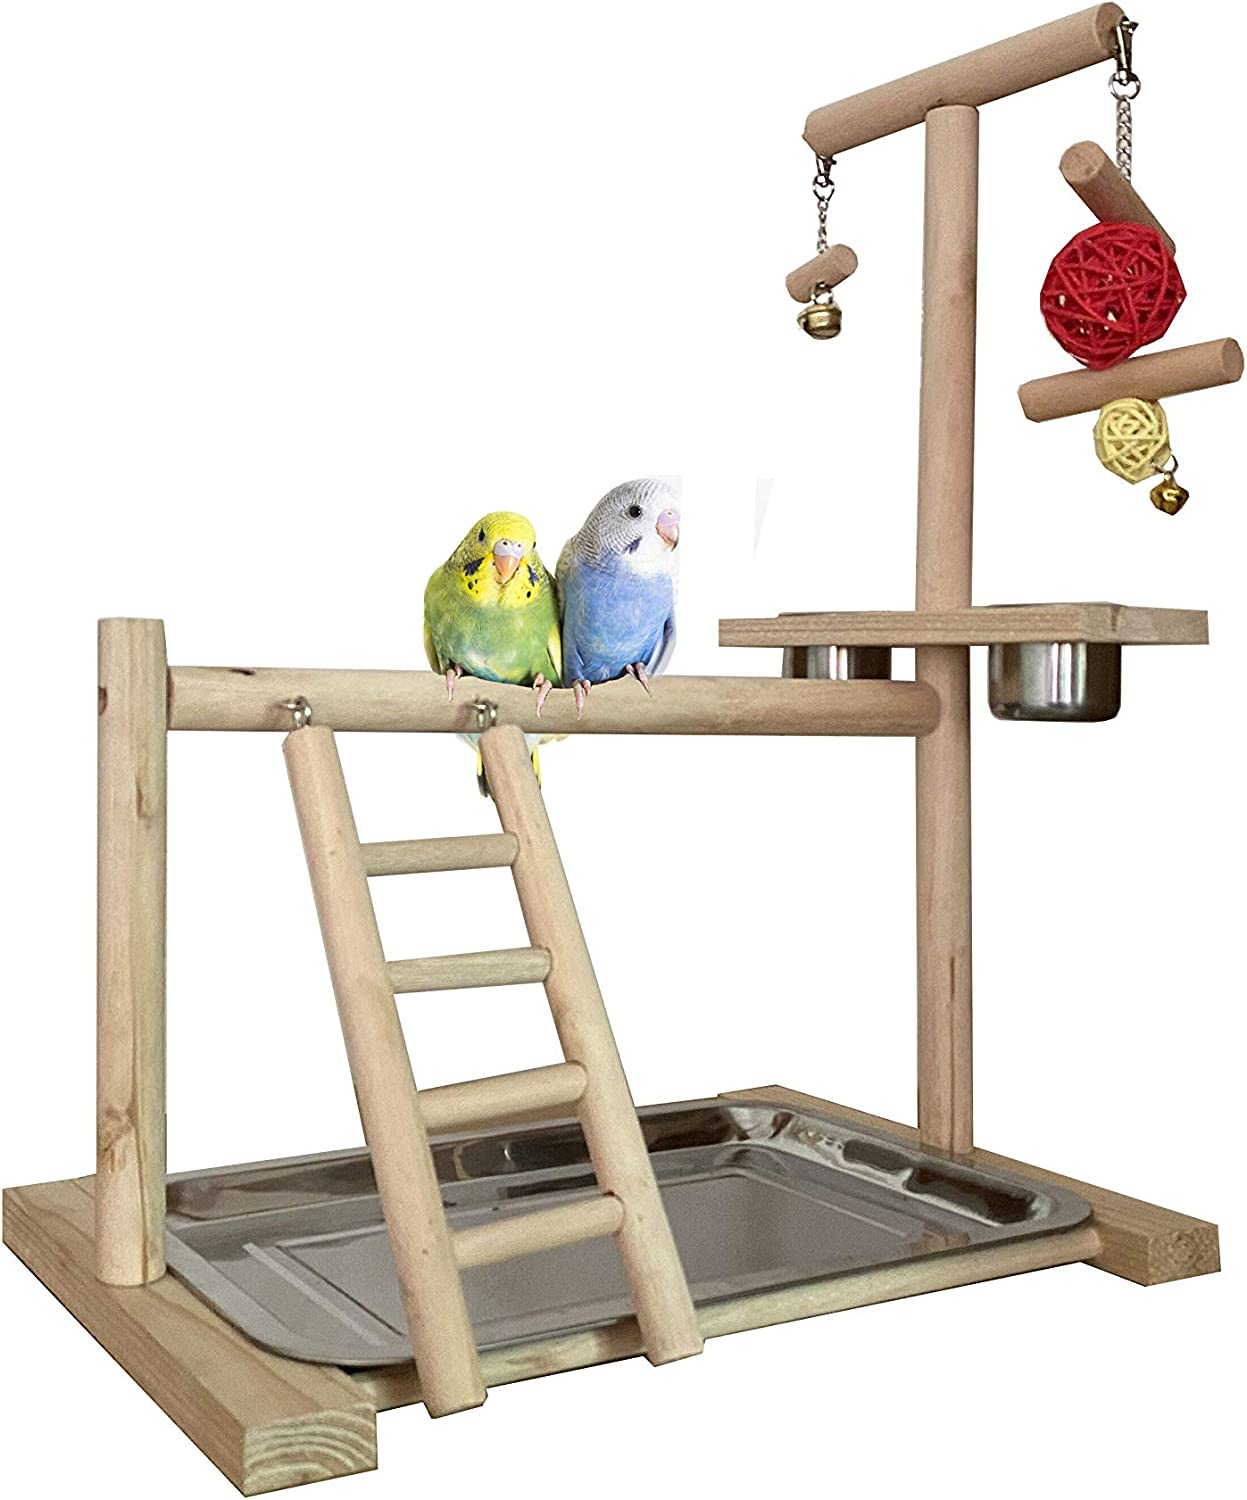 NAPURAL WYunpets Bird Playground Birdcage Playstand Parrot Play Gym Parakeet Cage Decor Budgie Perch Stand with Feeder Seed Cups Ladder Chew Toys Conure Macaw Cockatiel Finch Small Animals : Pet Supplies